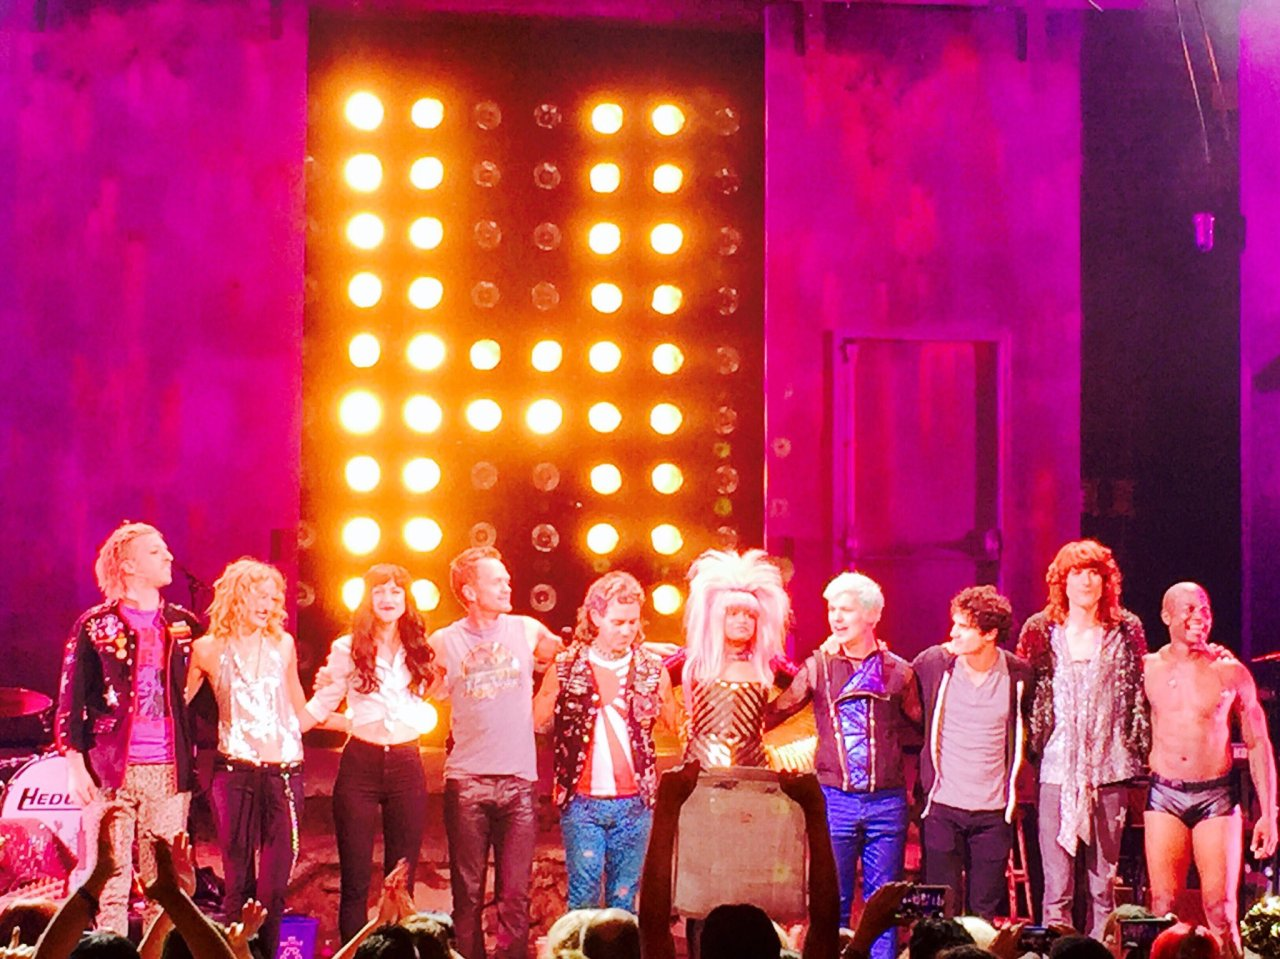 broadway - The Hedwig and the Angry Inch Tour in SF and L.A. (Promotion, Pre-Performances & Miscellaneous Information) - Page 3 Tumblr_odgdalc2jw1uetdyxo2_1280